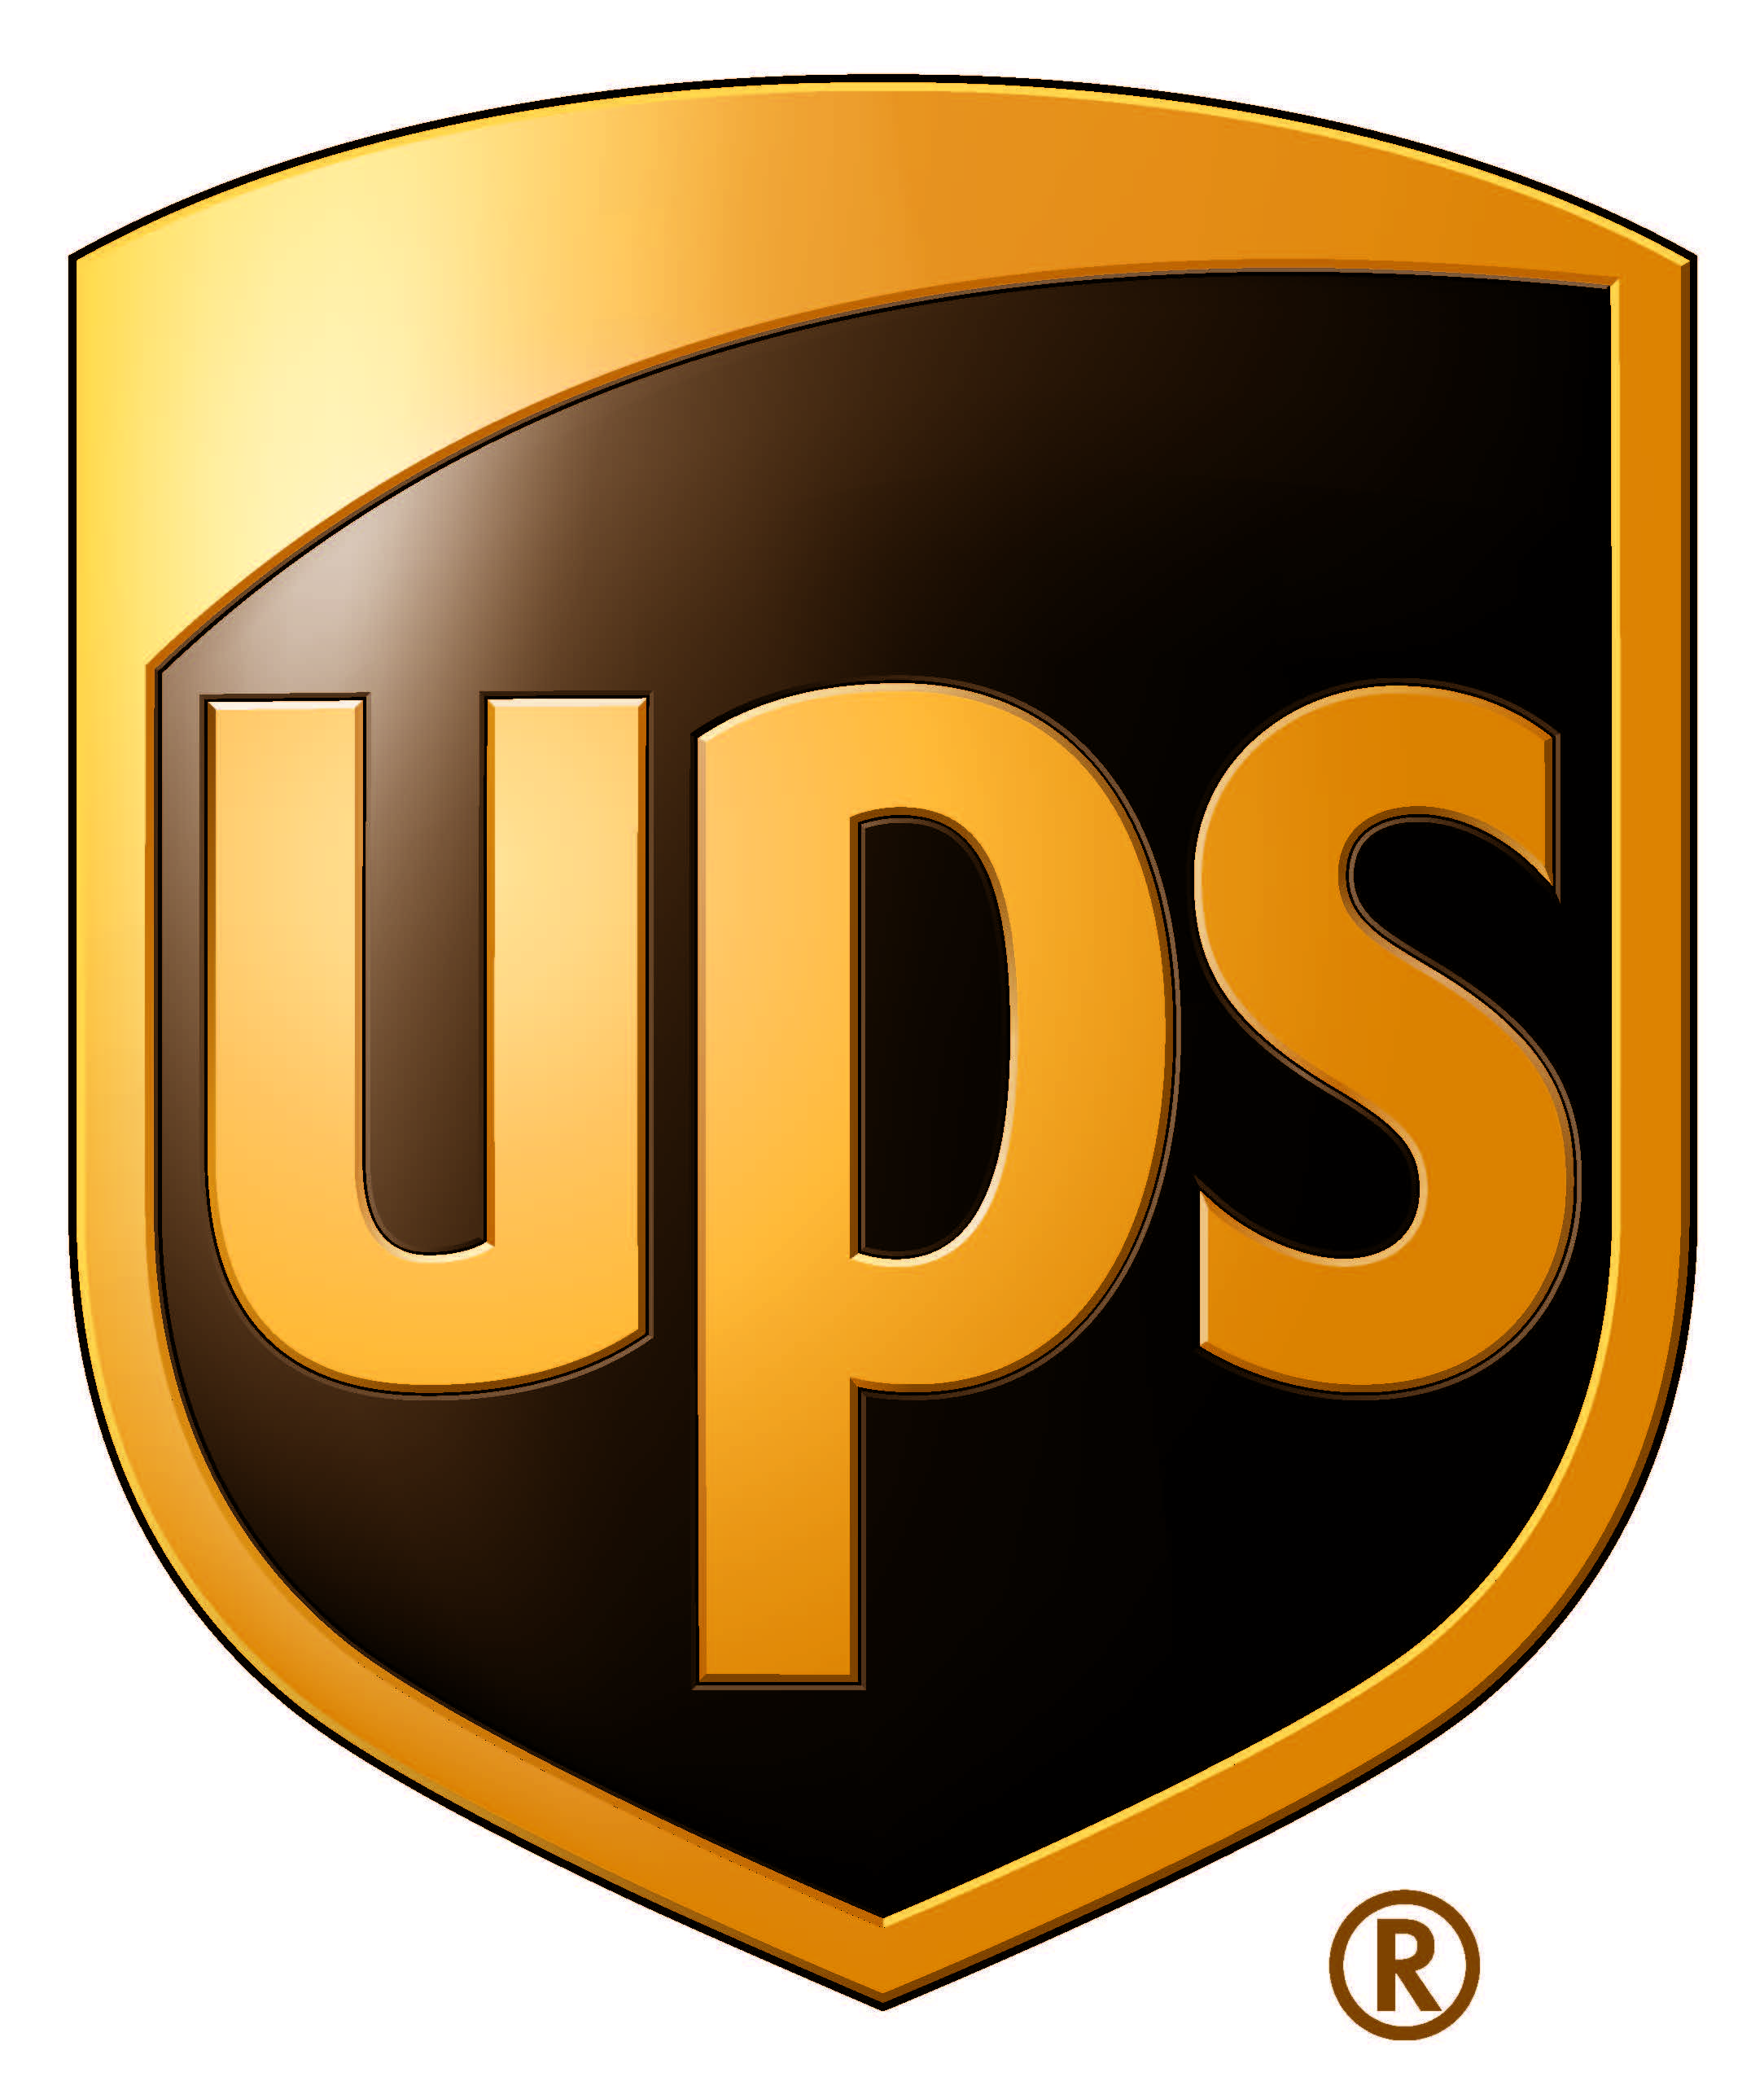 Ups Campusship Login With Images Handmade Fine Jewelry Green Business Ups